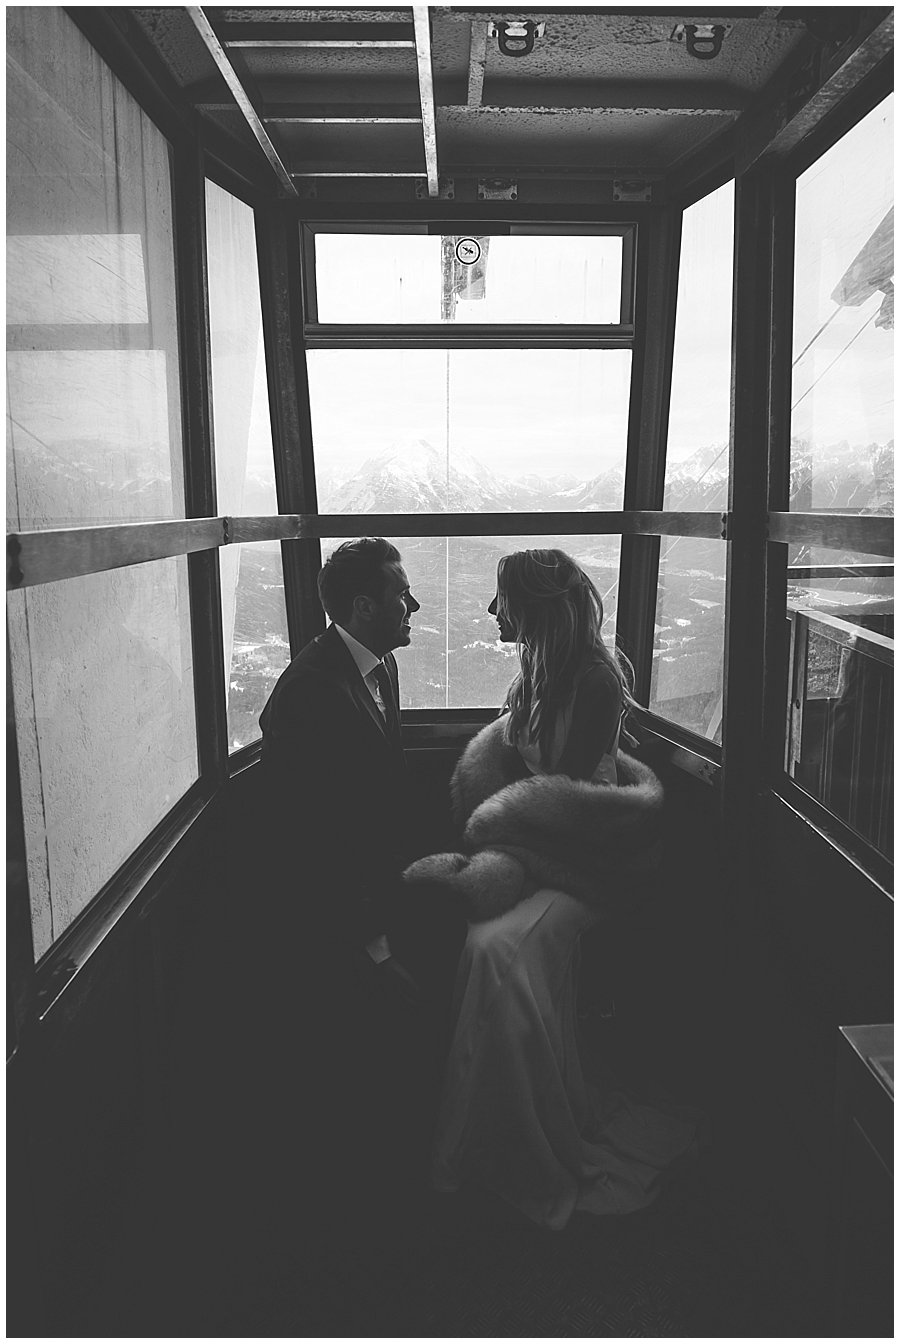 Steph and Lee share a quiet moment alone in the cable car